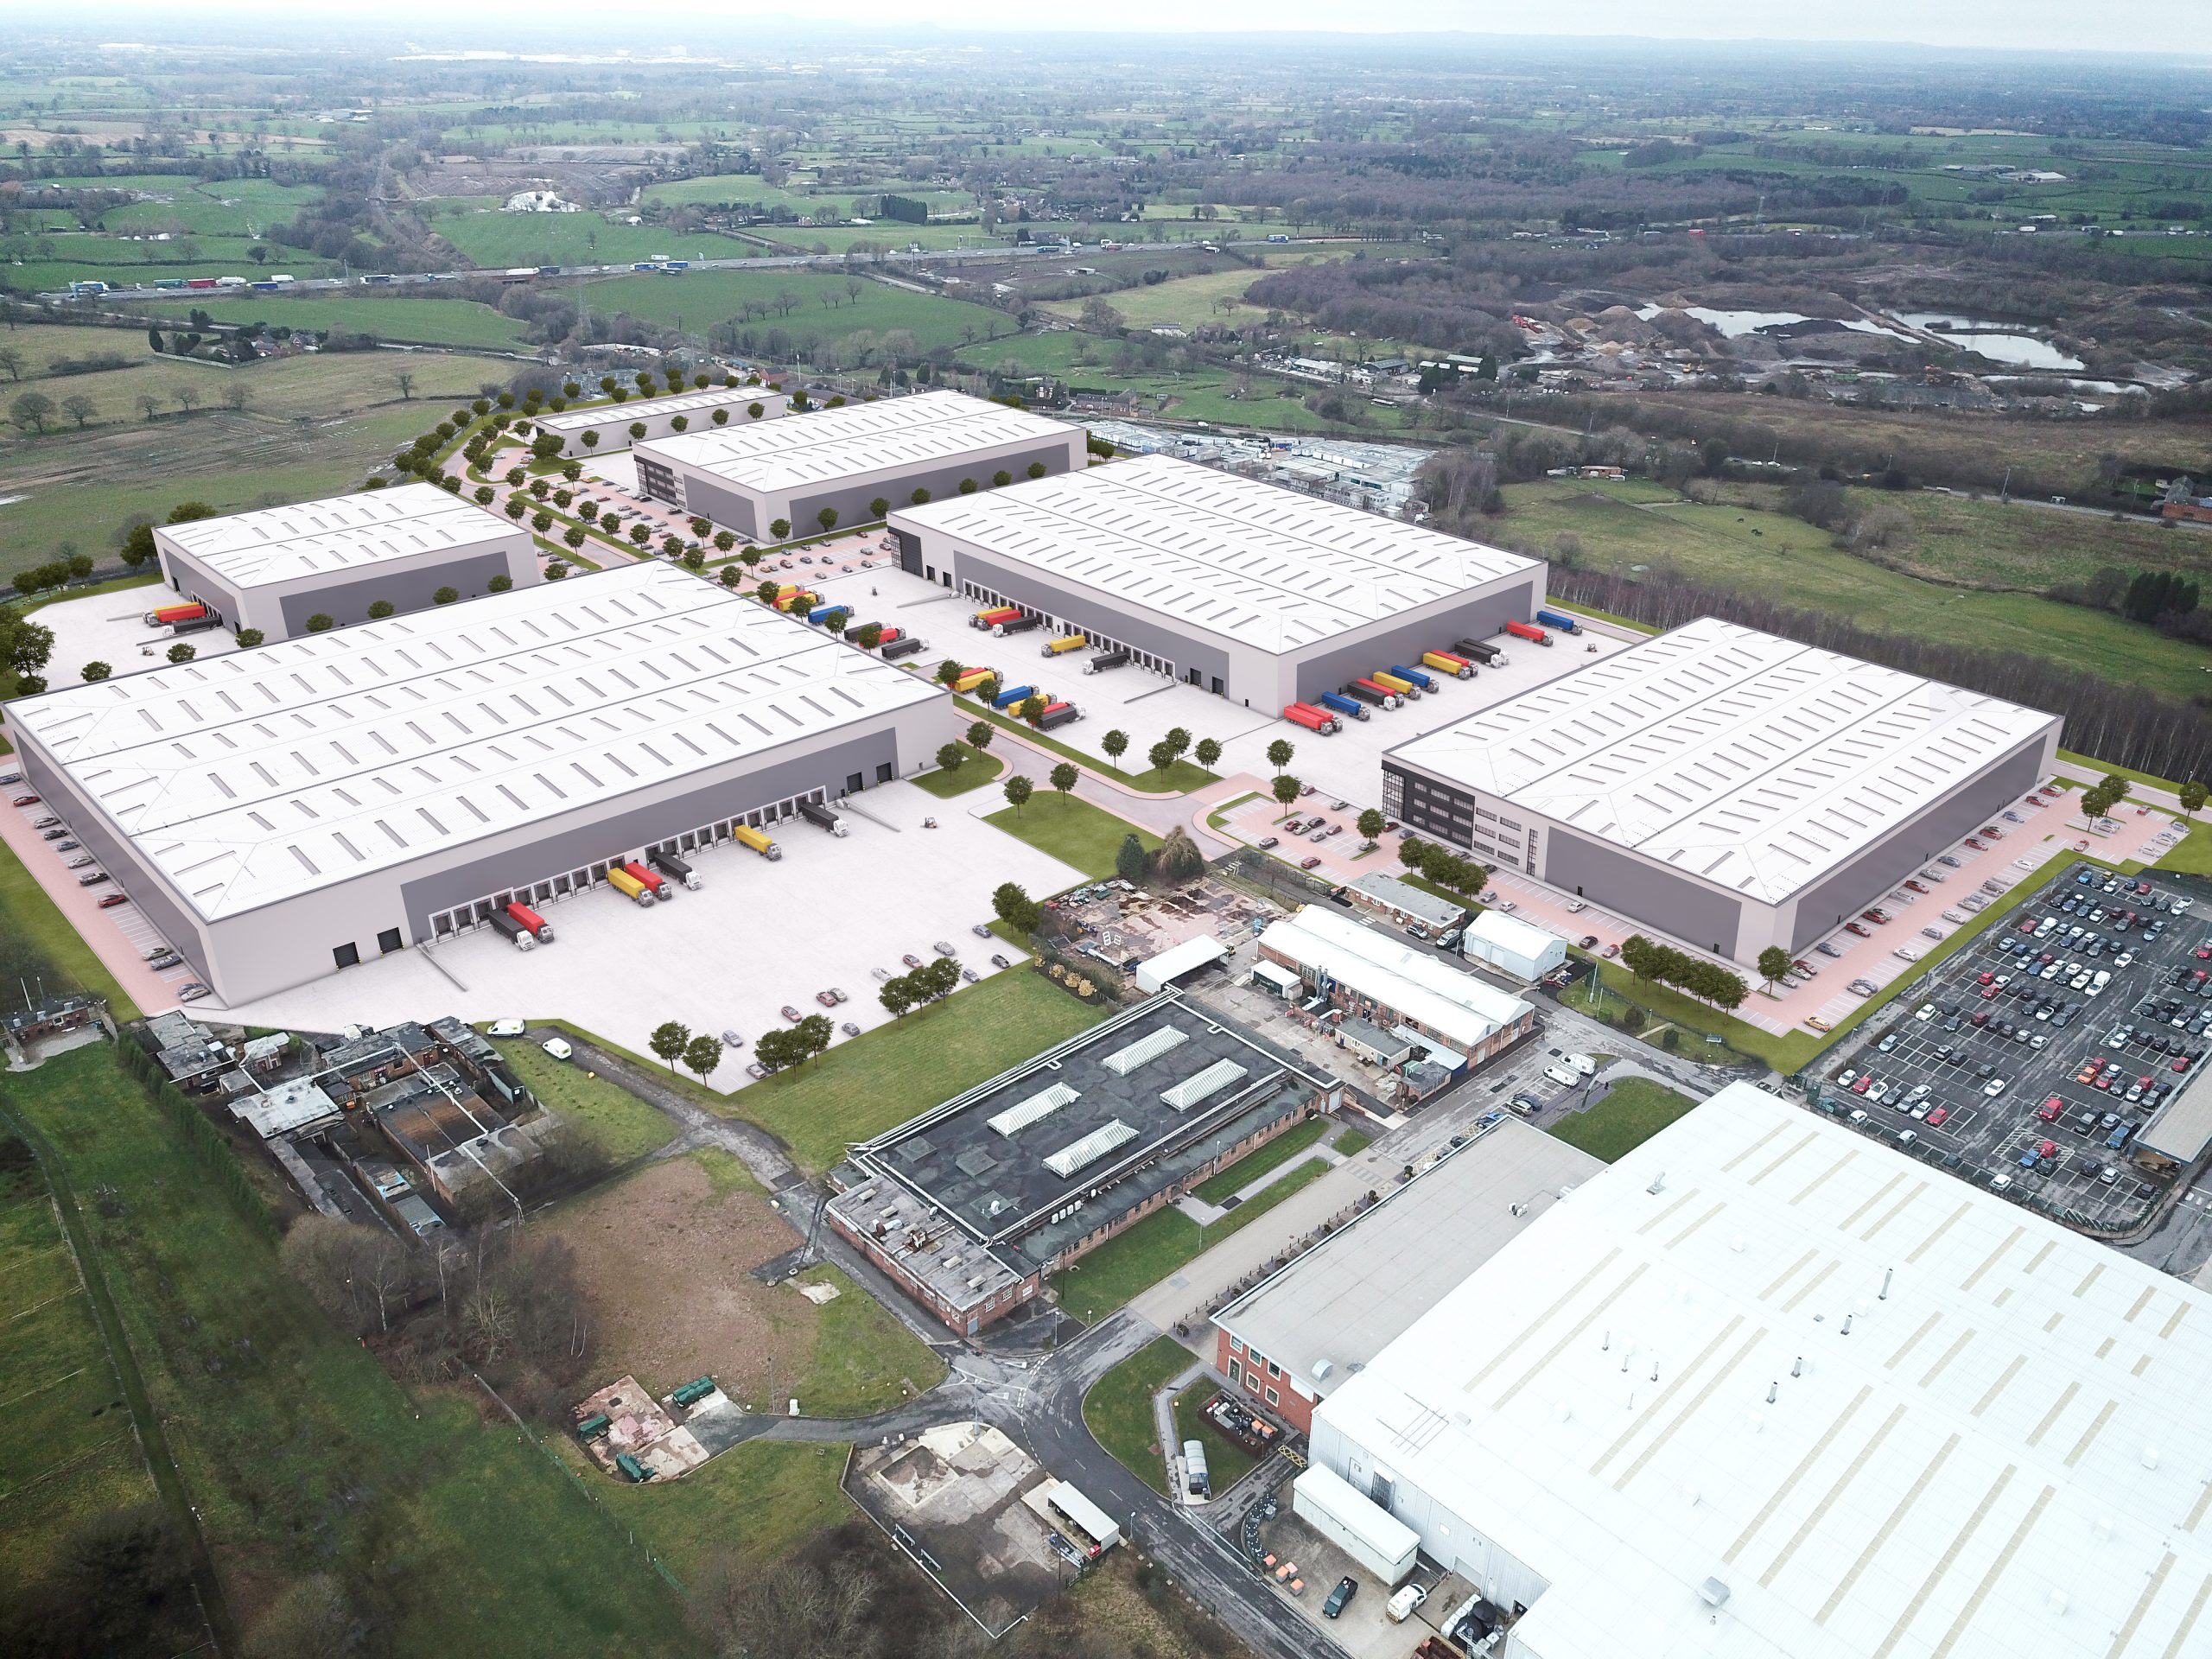 Plans unveiled for major new industrial development at Radway Green in Crewe